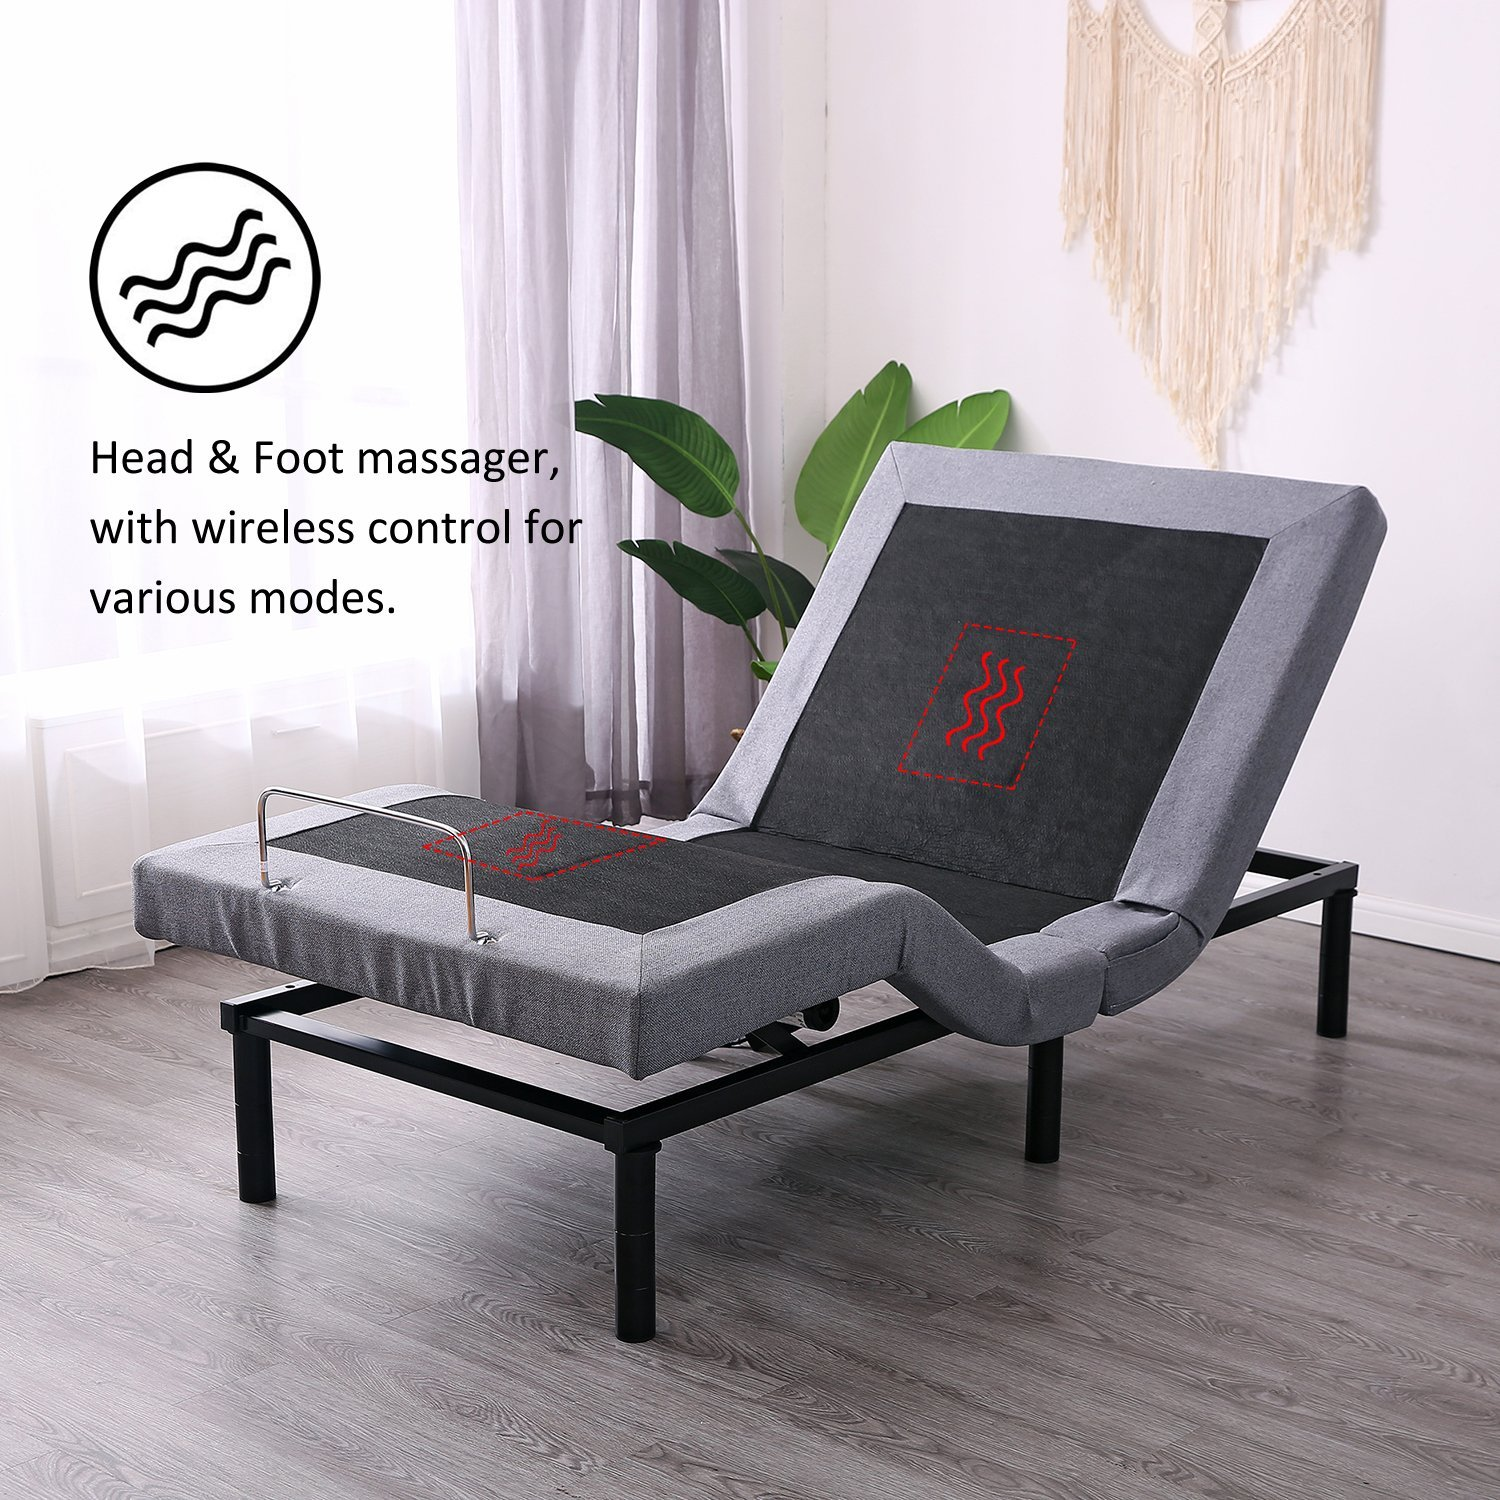 Leisuit Adjustable Bed Frame Massage Functionality